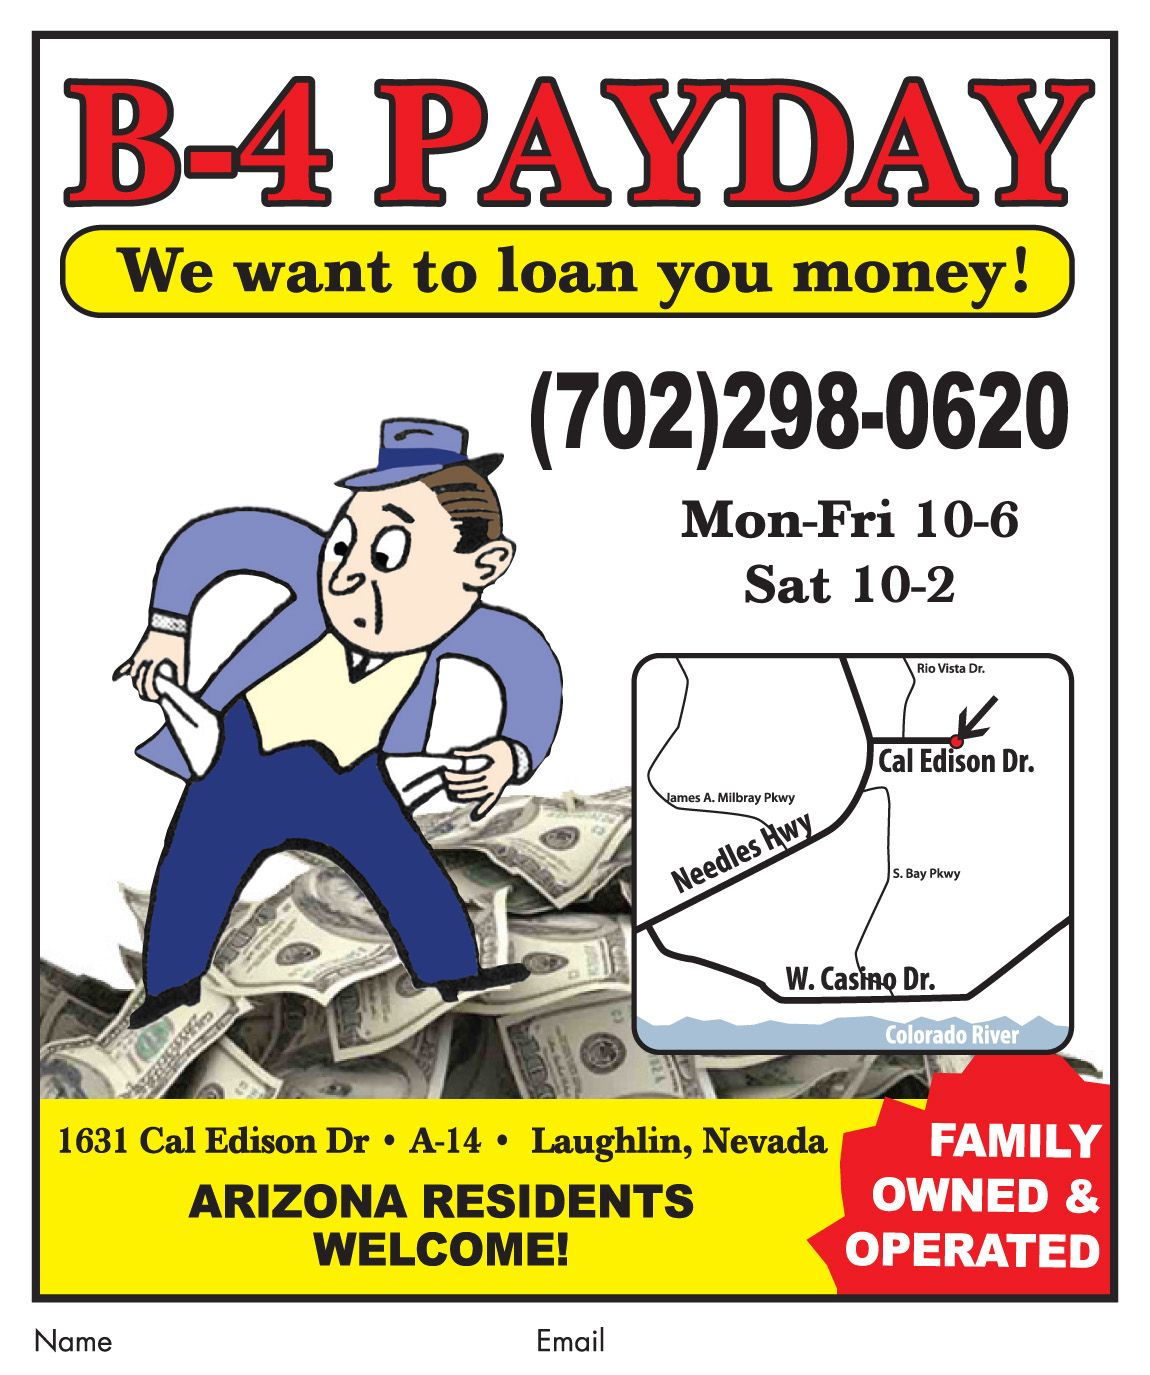 Payday cash advance arkansas image 6